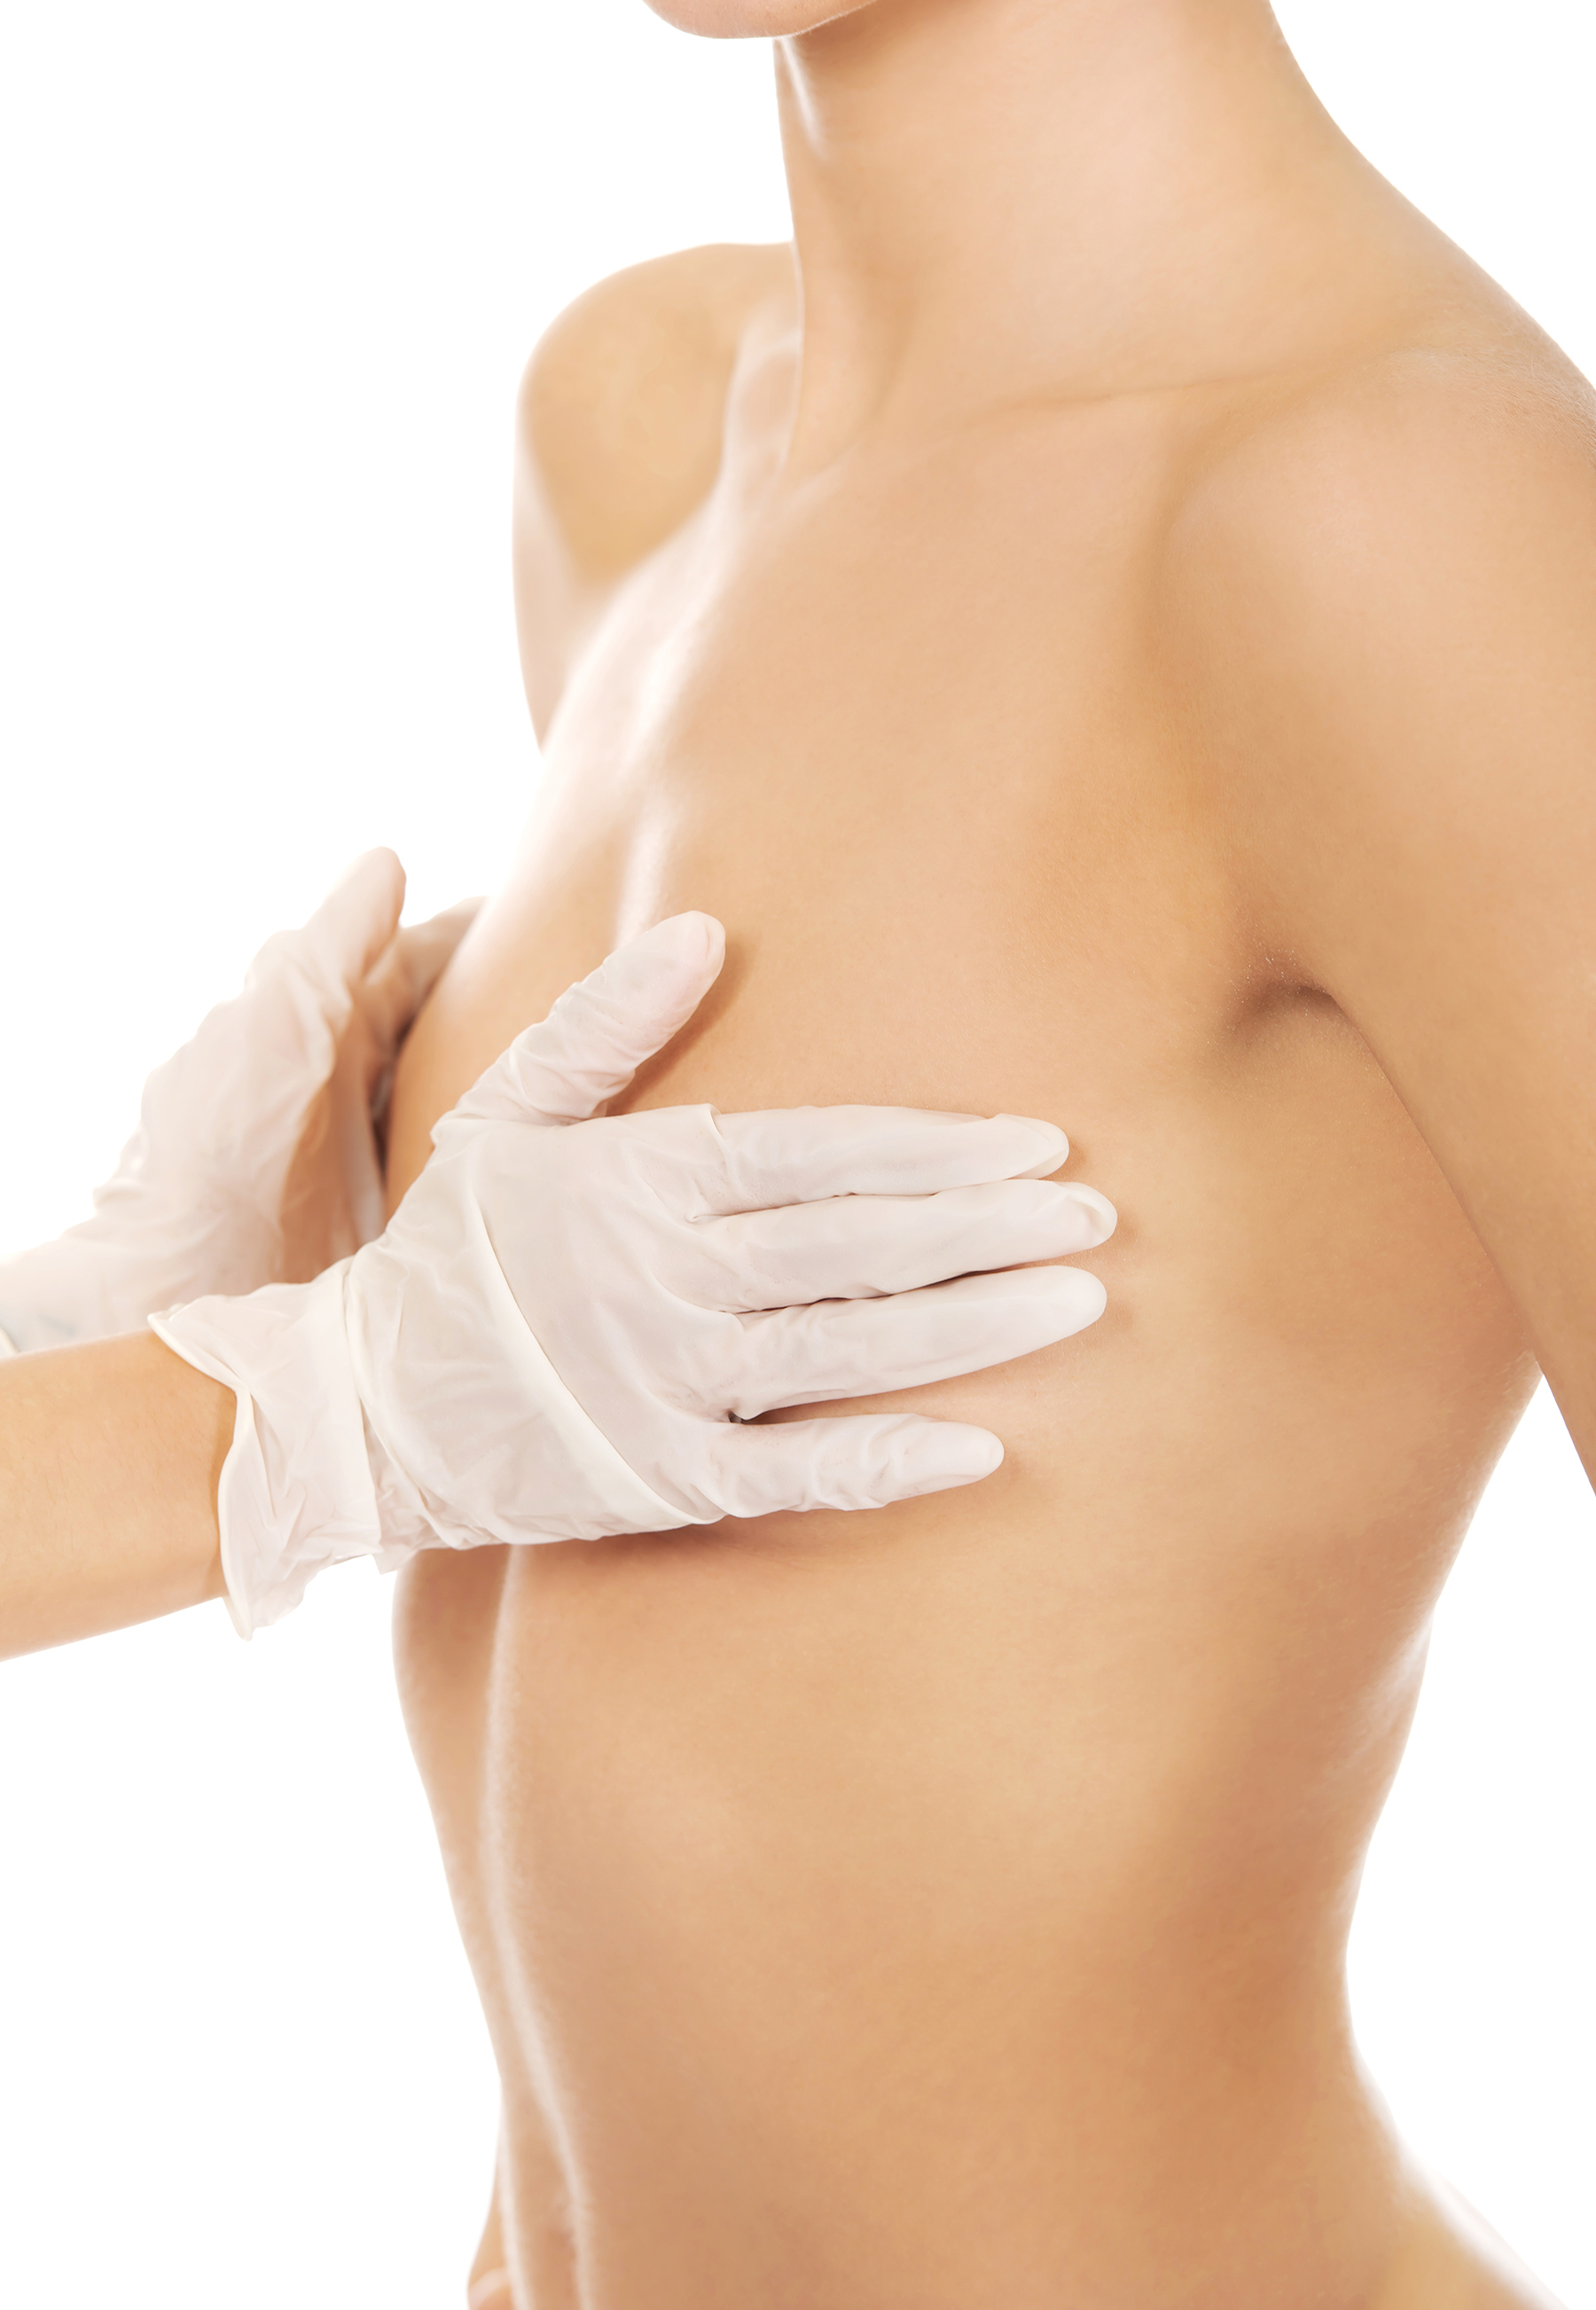 Breast Augmentation Consultation